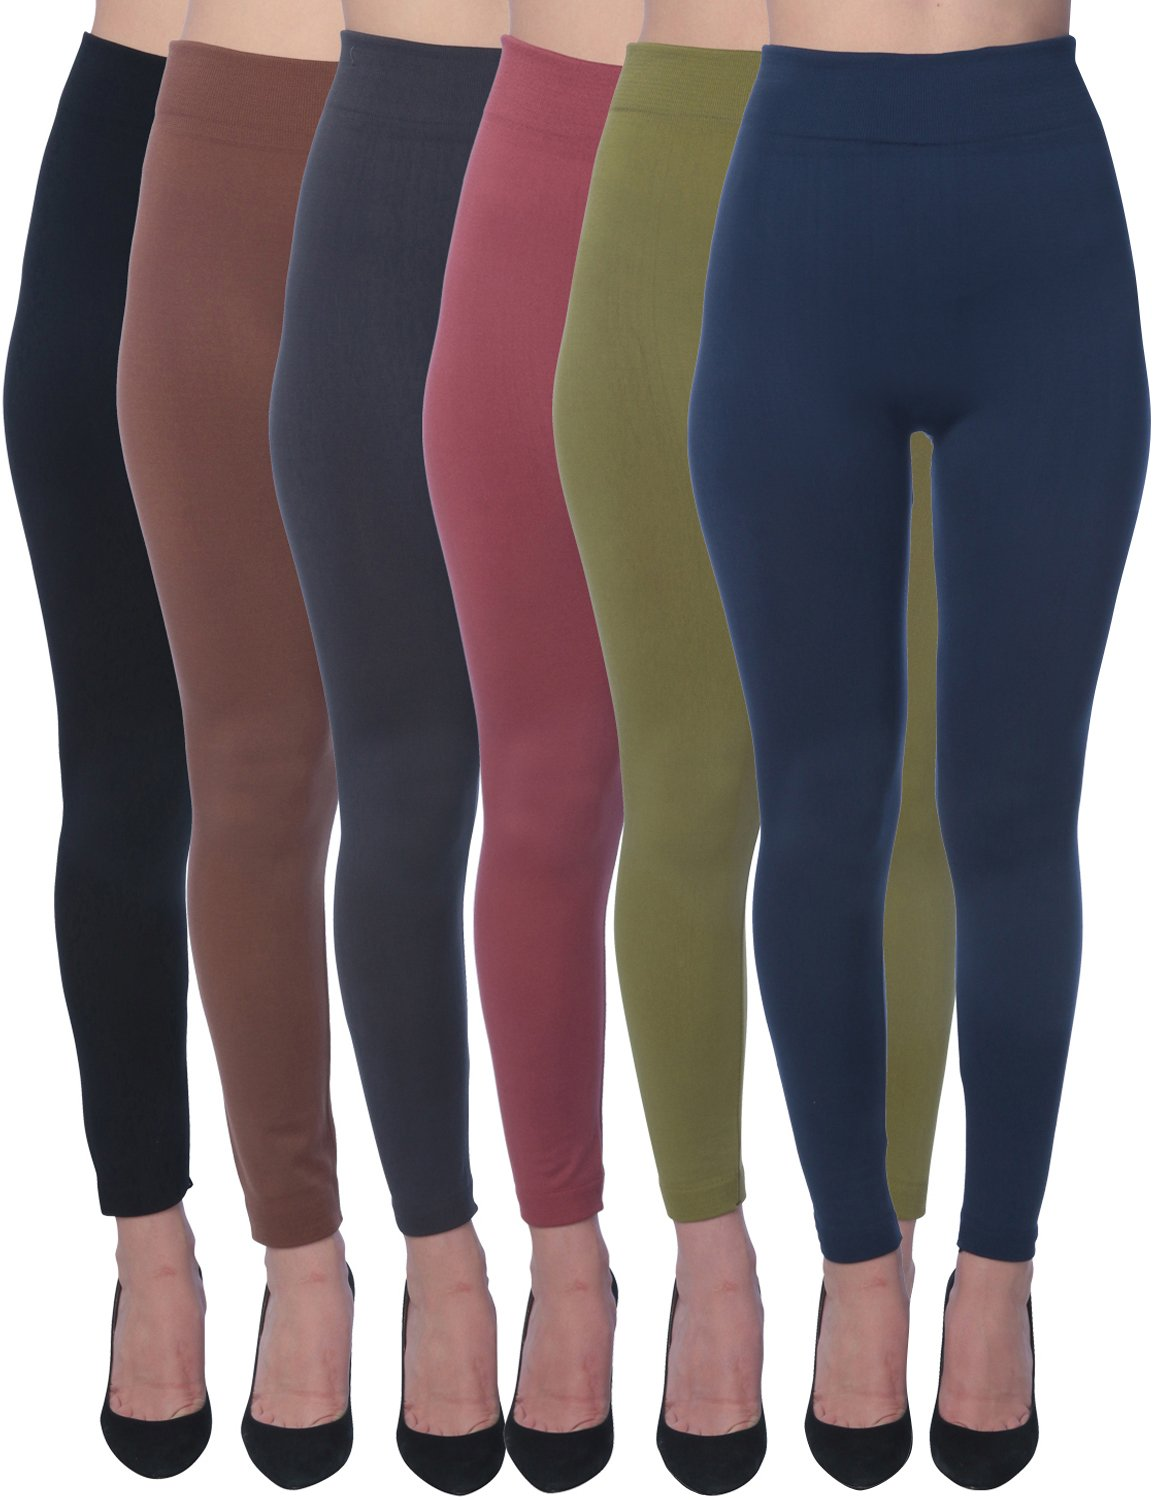 Active Club Women's Fleece Lined Leggings - Seamless High Waisted Soft Brushed,1X/2X,Black/Navy/Dk Grey/Olive/Rose/Brown